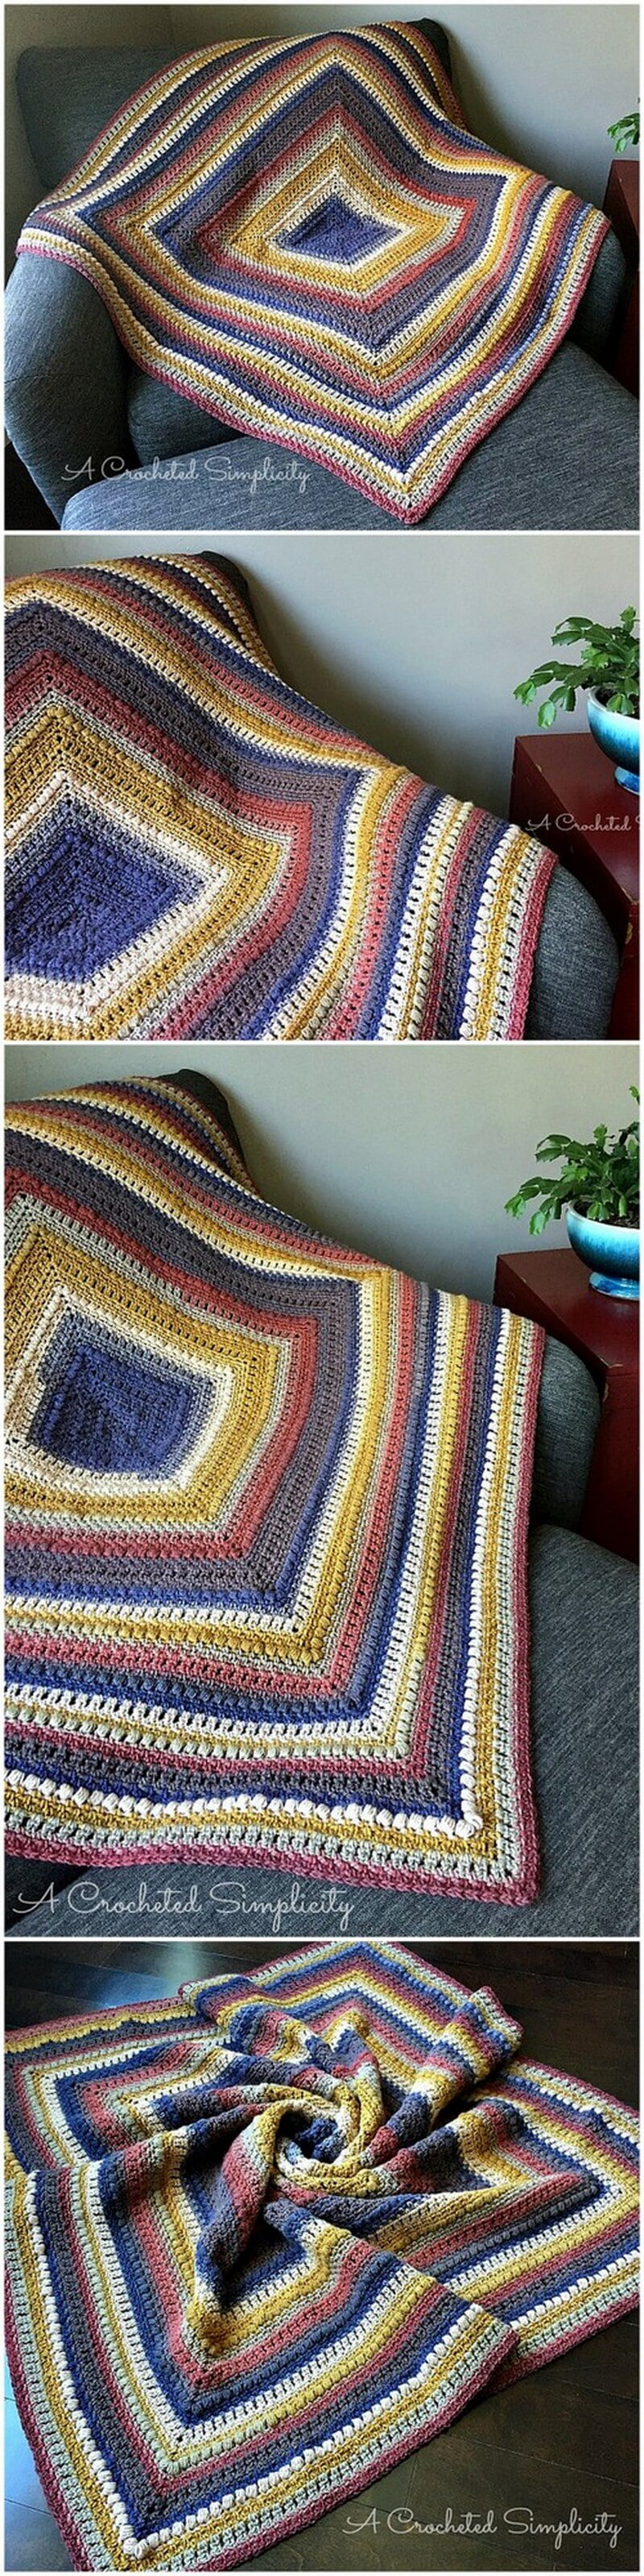 Easy Crochet Blanket Pattern (54)